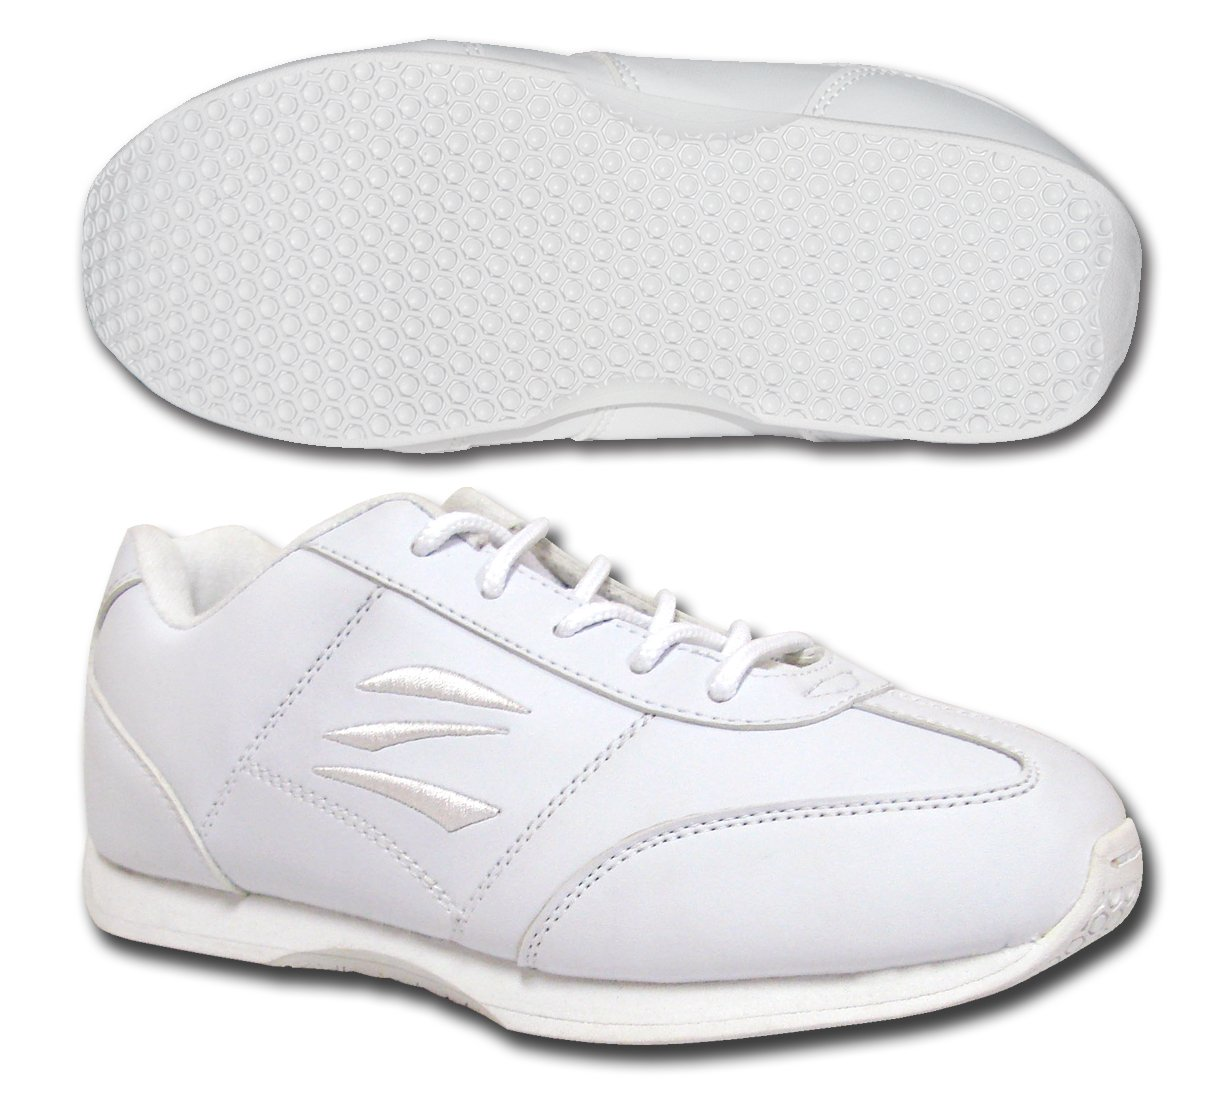 Best Cheer Shoes For Bases